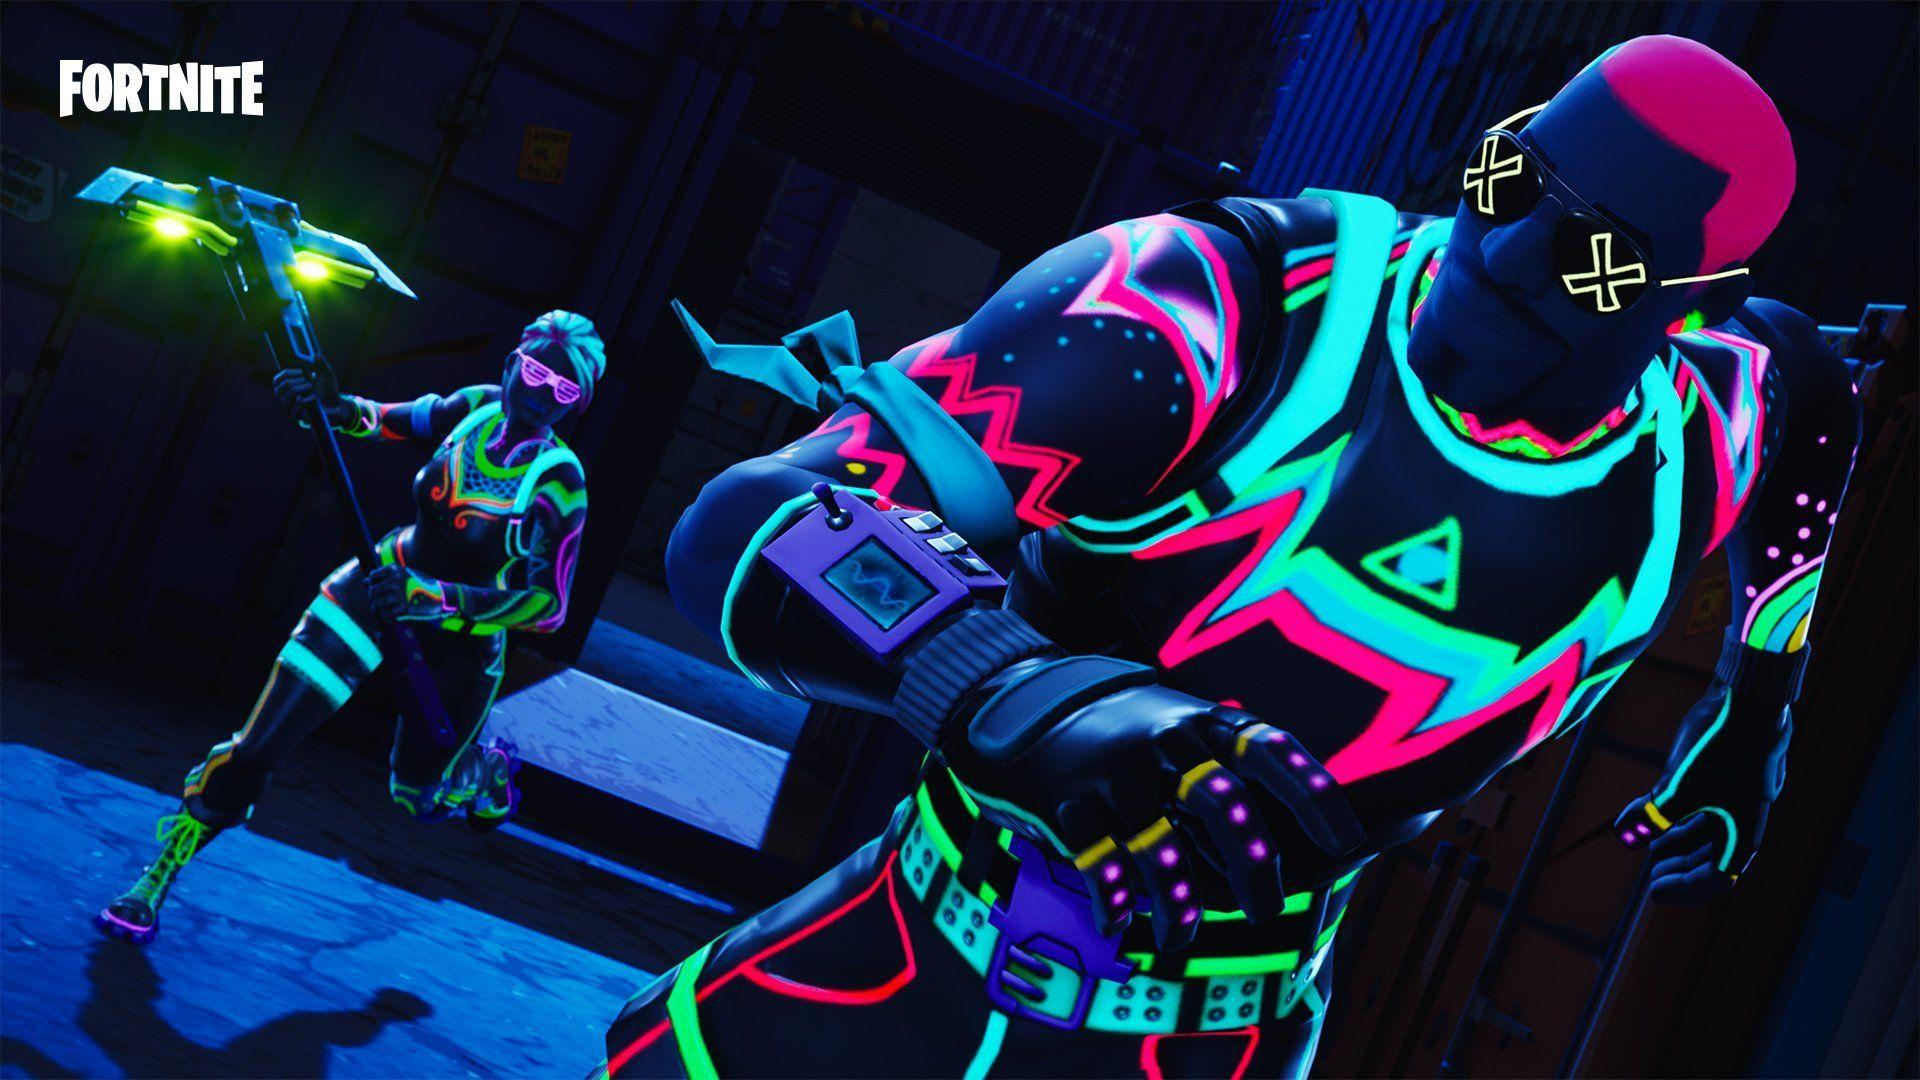 Fortnite new skin Liteshow Outfit HD Wallpaper | Background Image ...